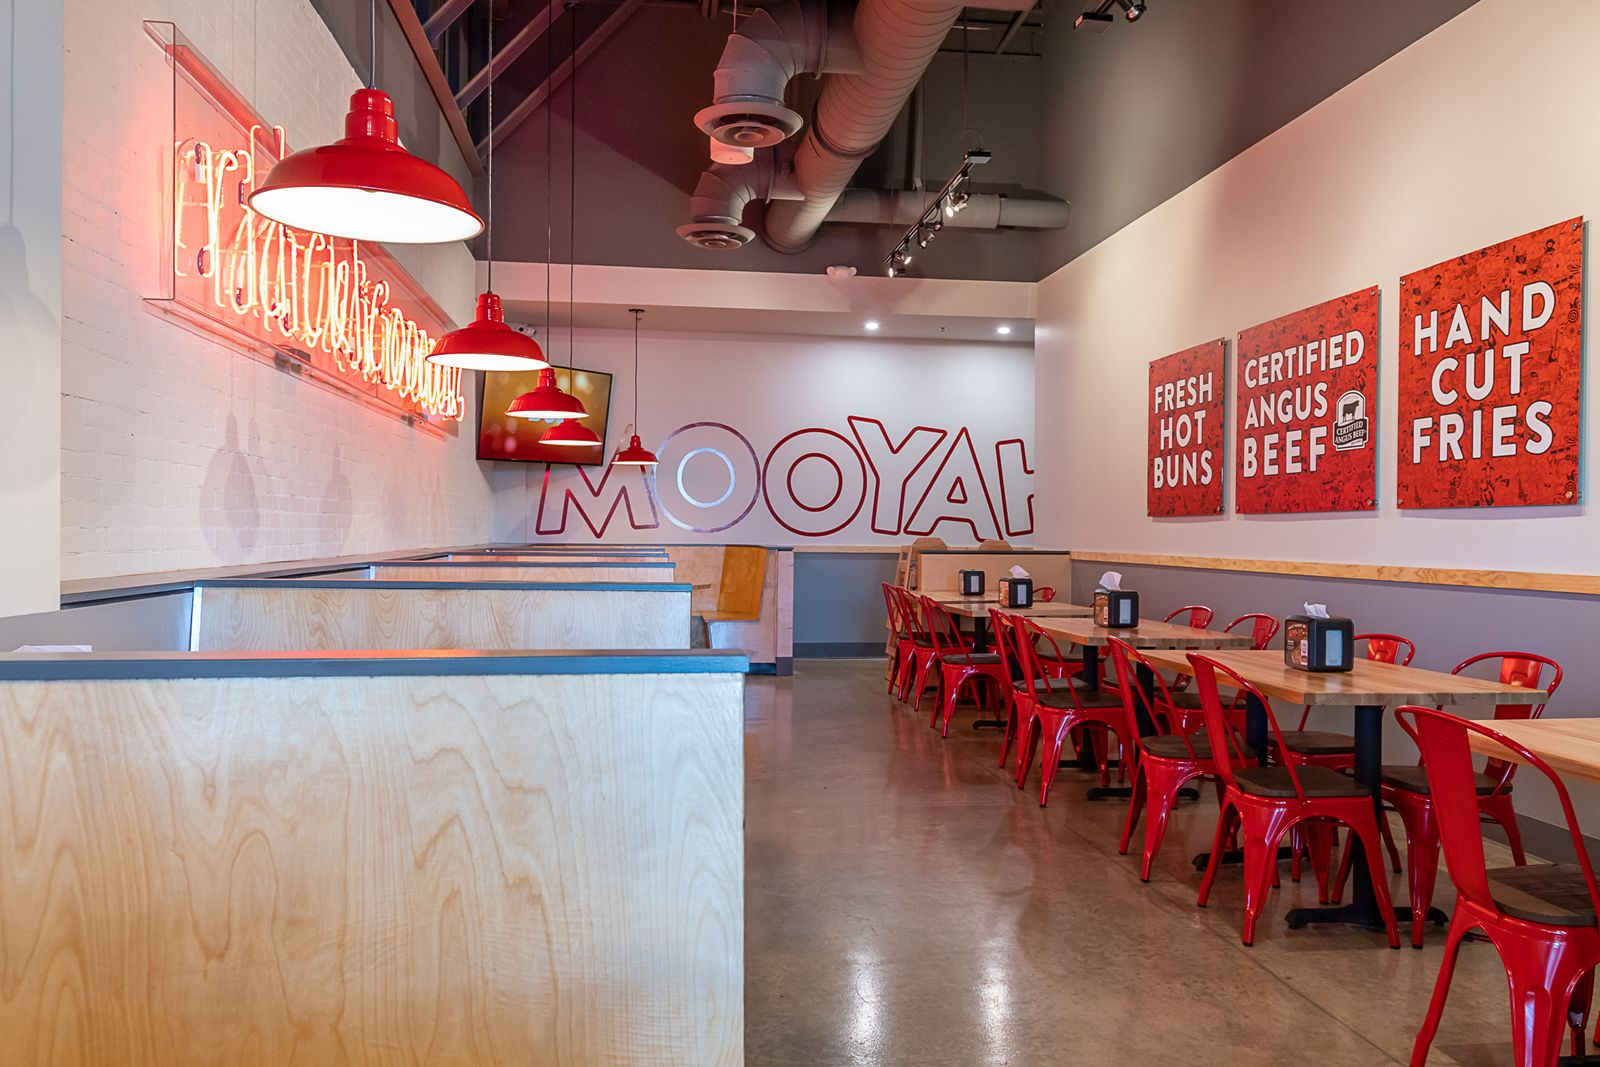 More MOOYAH in Madison: Multi-Unit Franchise Owners Open Fourth Madison Location